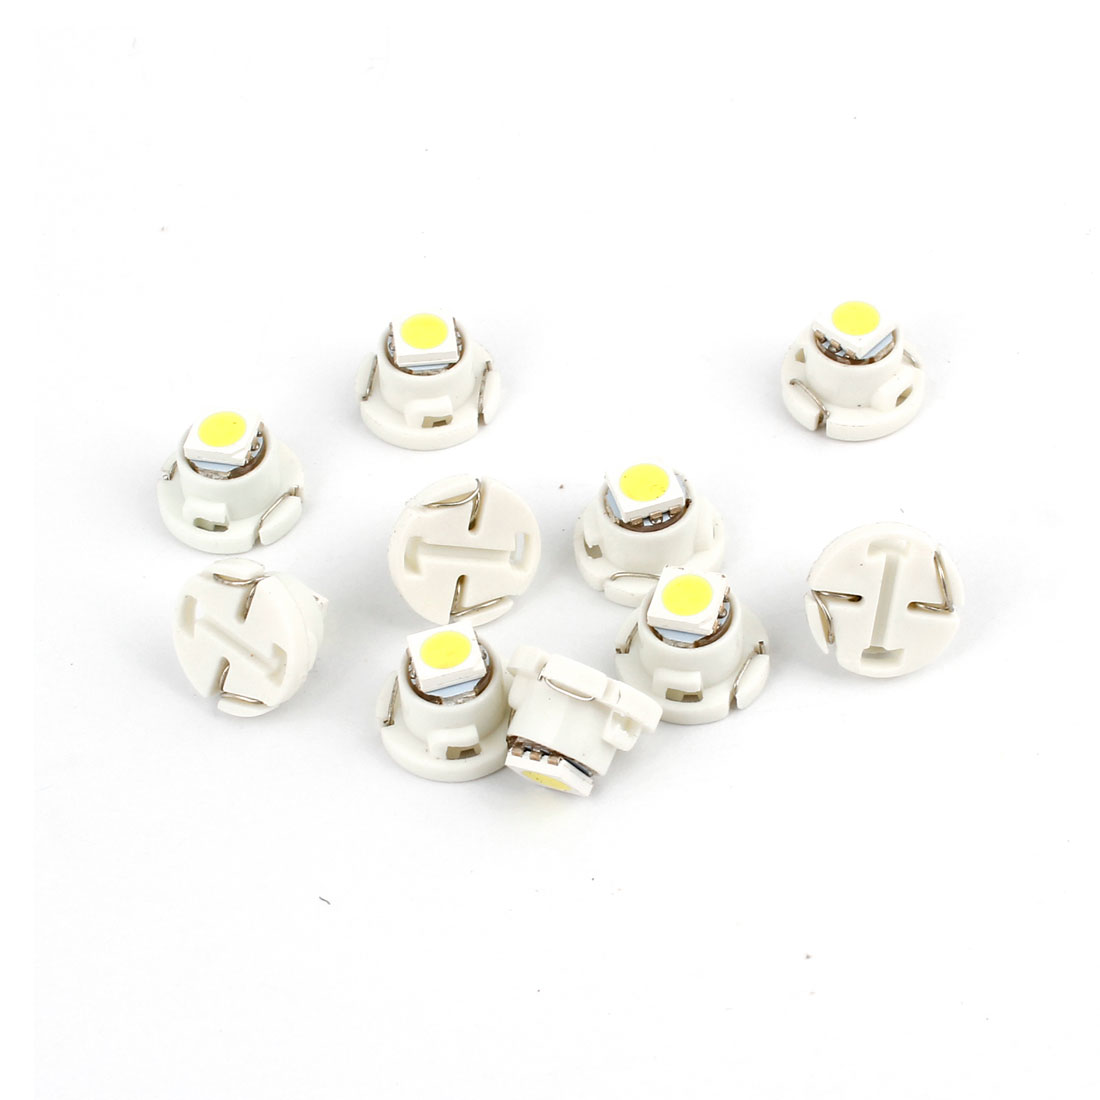 10 Pcs T4.7 White 5050 LED SMD Auto Car Dashboard Panel Meter Light Internal